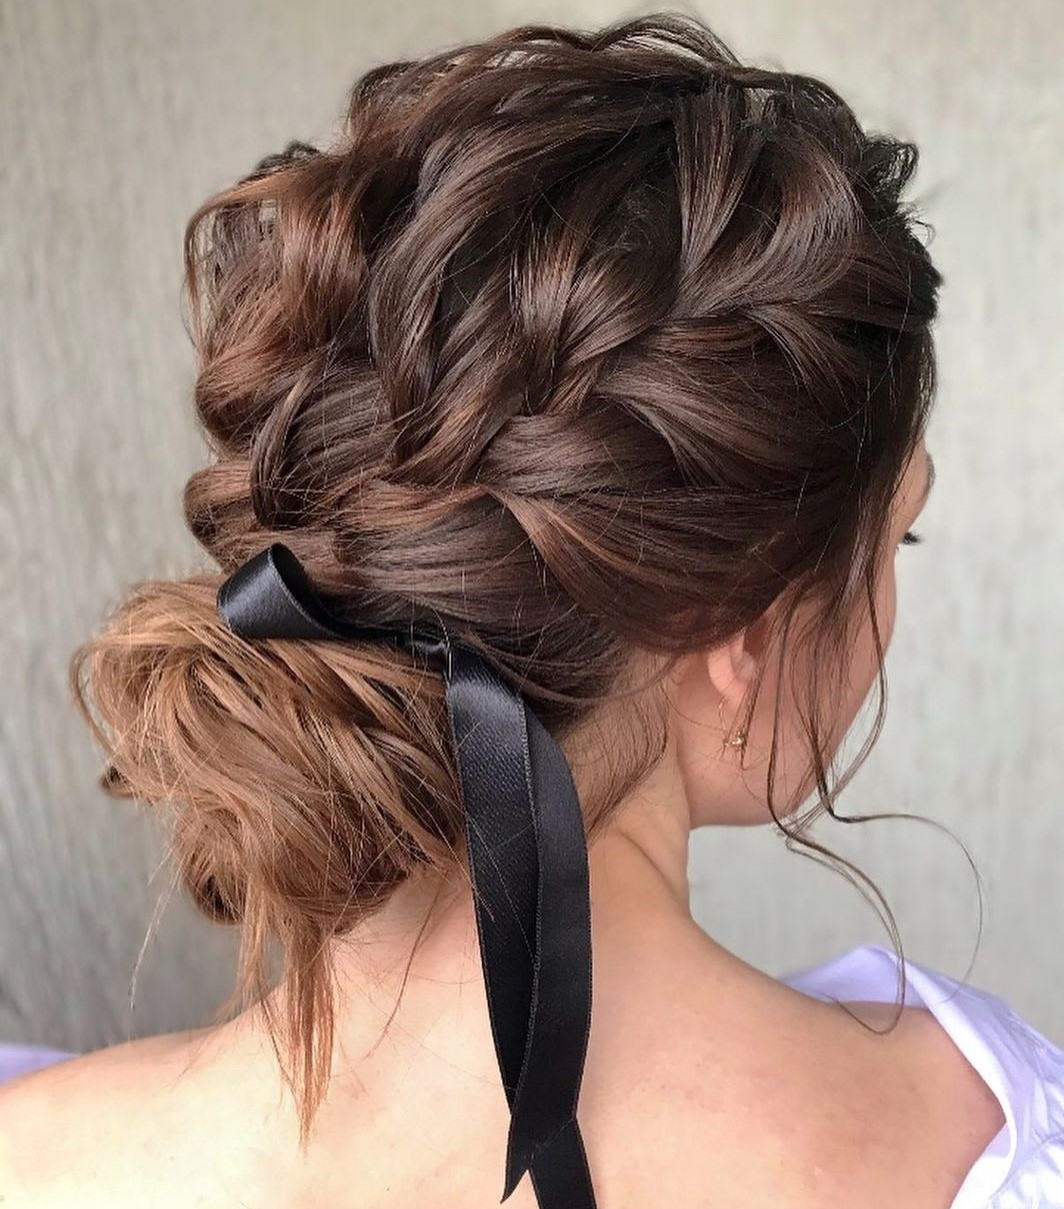 Loose Bun with a Braid and Ribbon